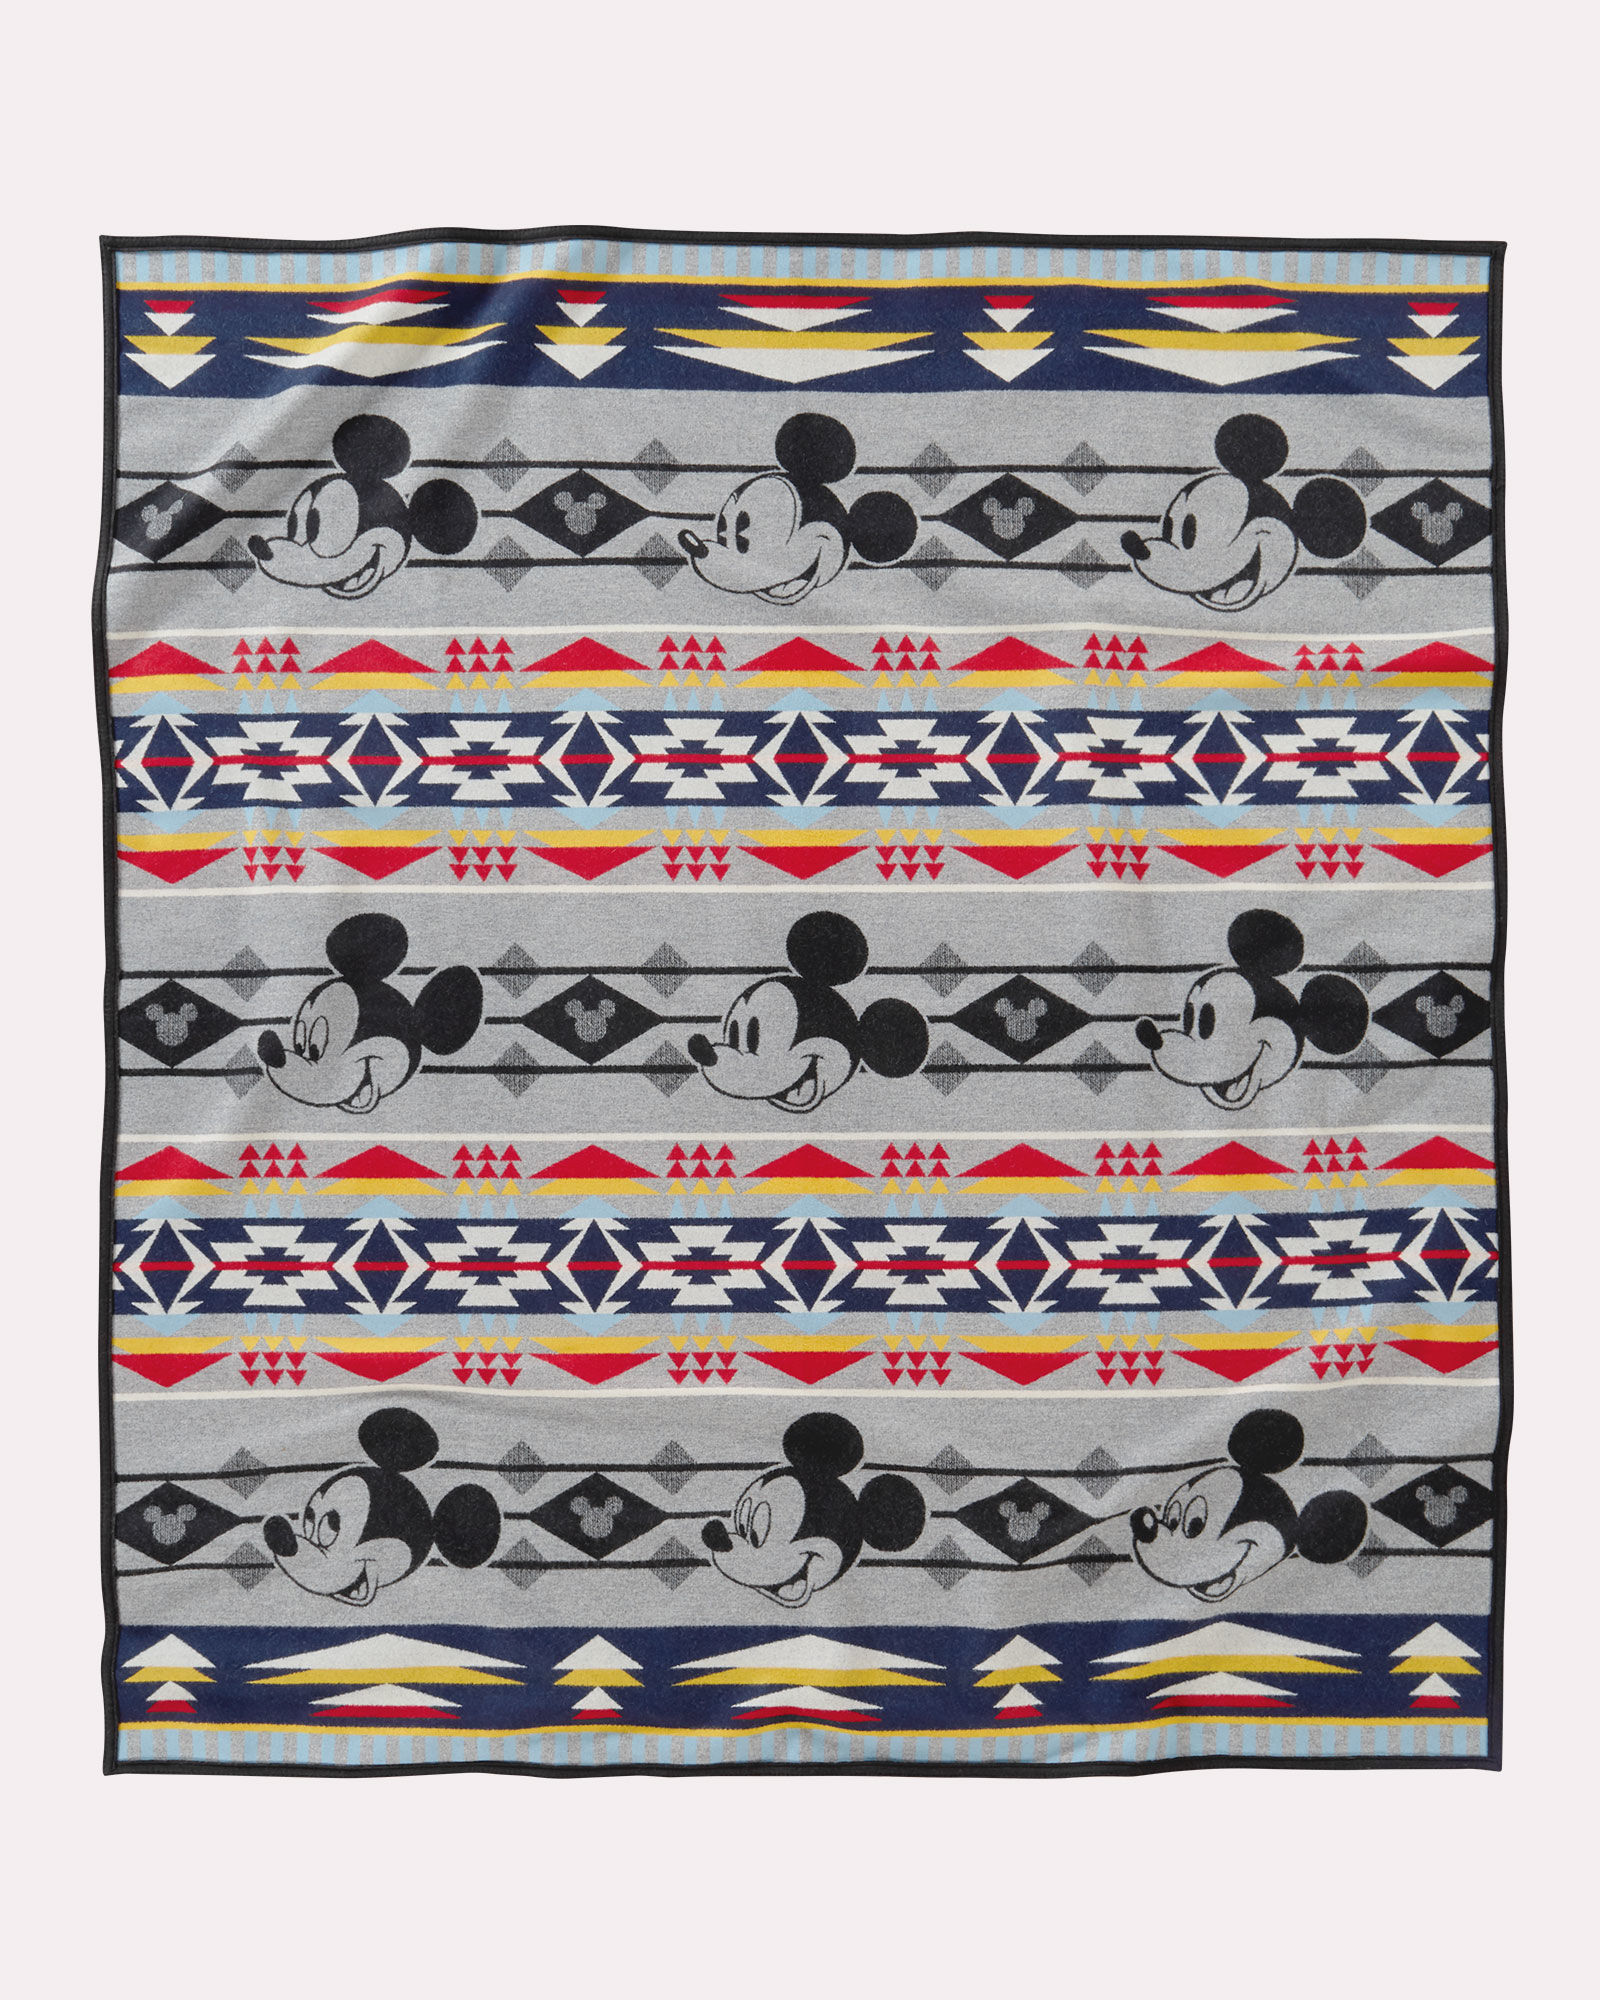 The Mickey Through the Years blanket, by Pendleton